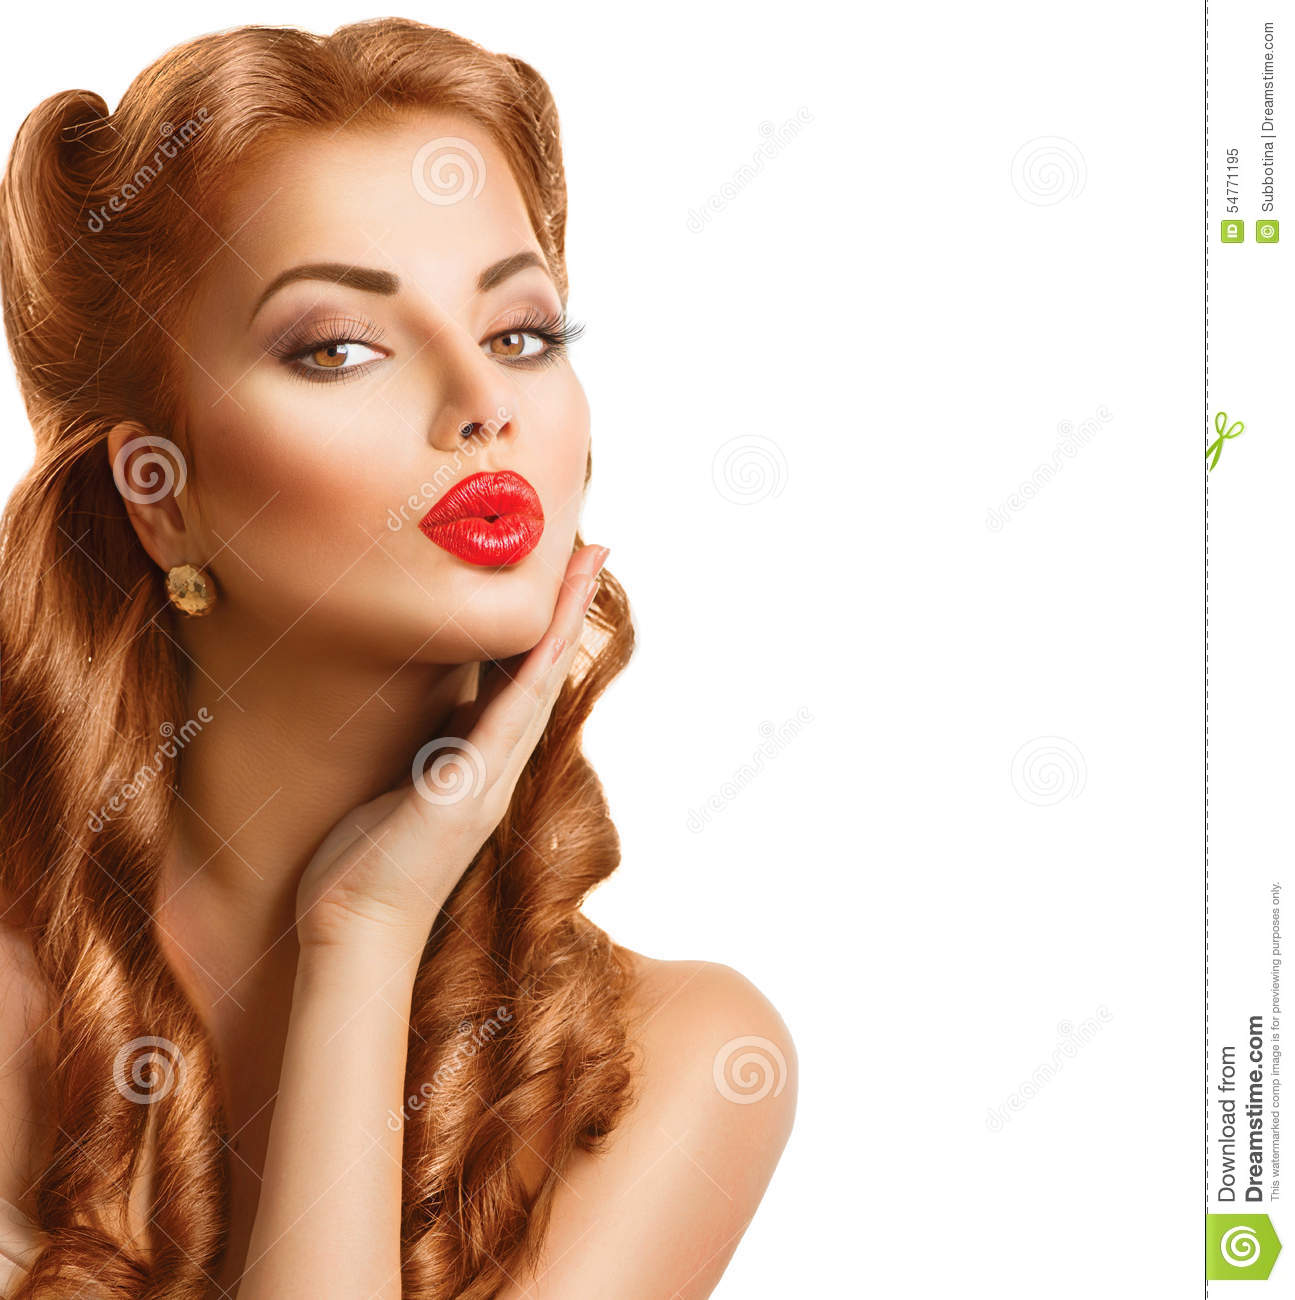 retro woman with red hair stock image image of eyes. Black Bedroom Furniture Sets. Home Design Ideas